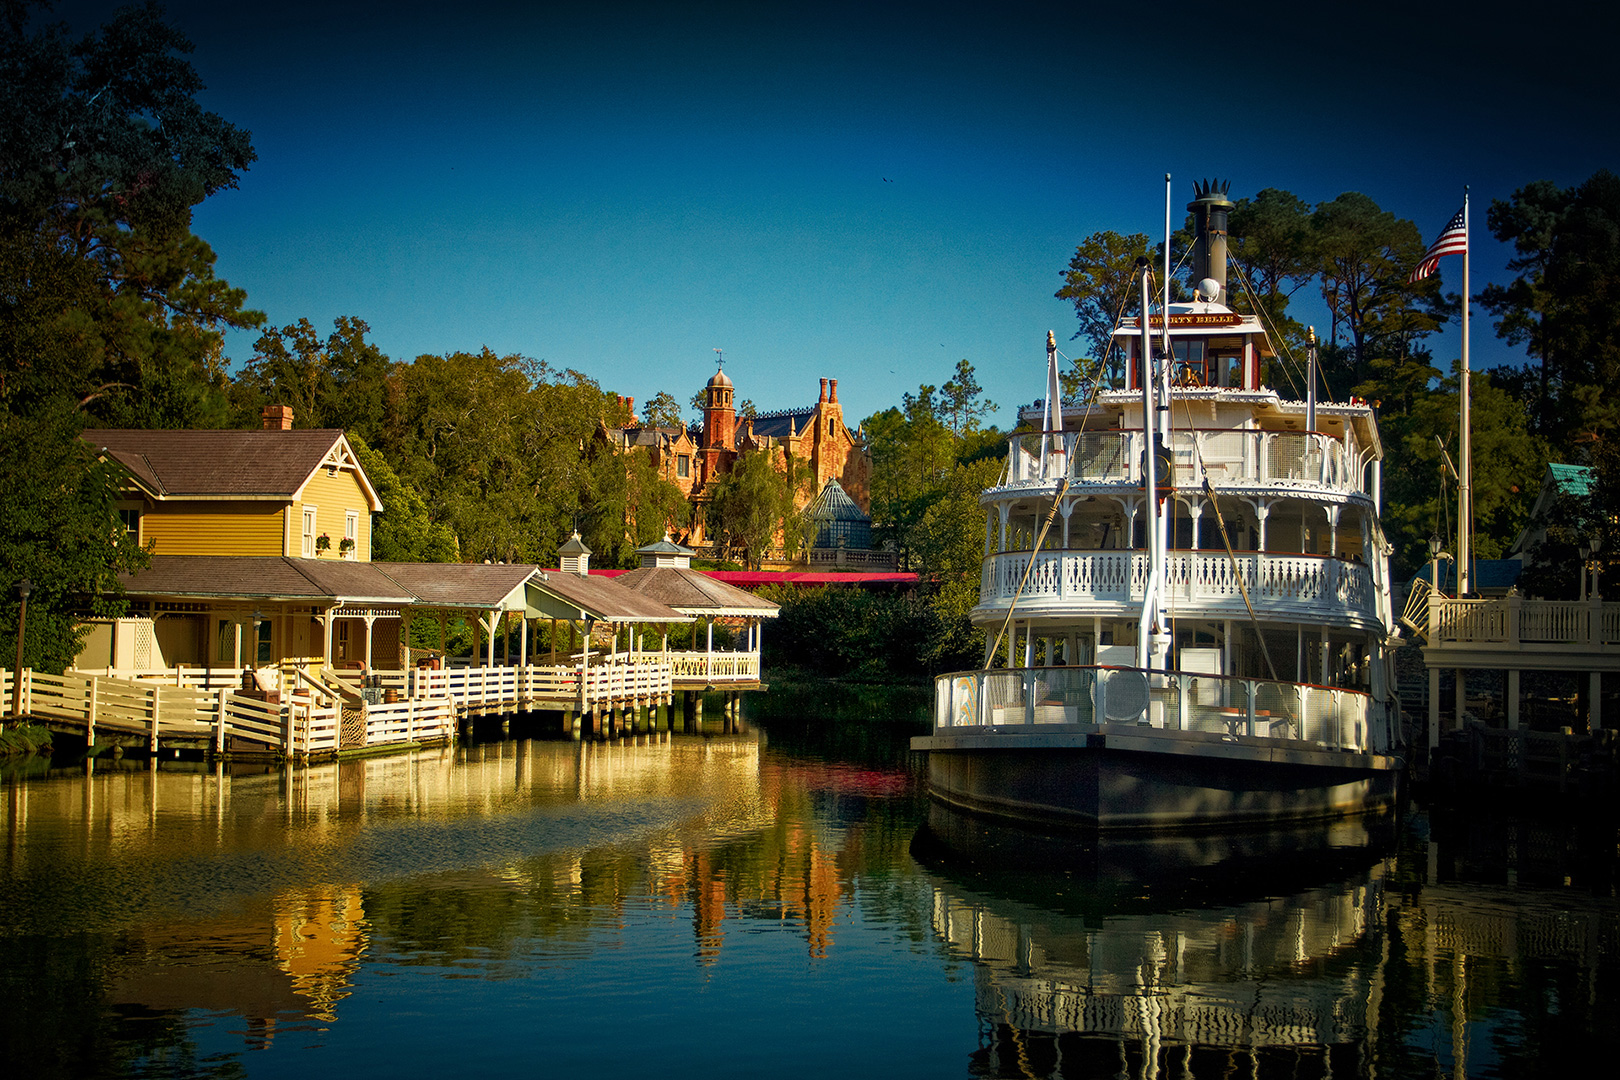 Disney Photography, Disney World Photography, Disneyland Photography, Disney Photos, Disney Pictures, Walt Disney World, The Magic Kingdom, Walt Disney, Mickey Mouse, Orlando, Florida, Theme Park,  River Boat, Liberty Square, Rivers of America